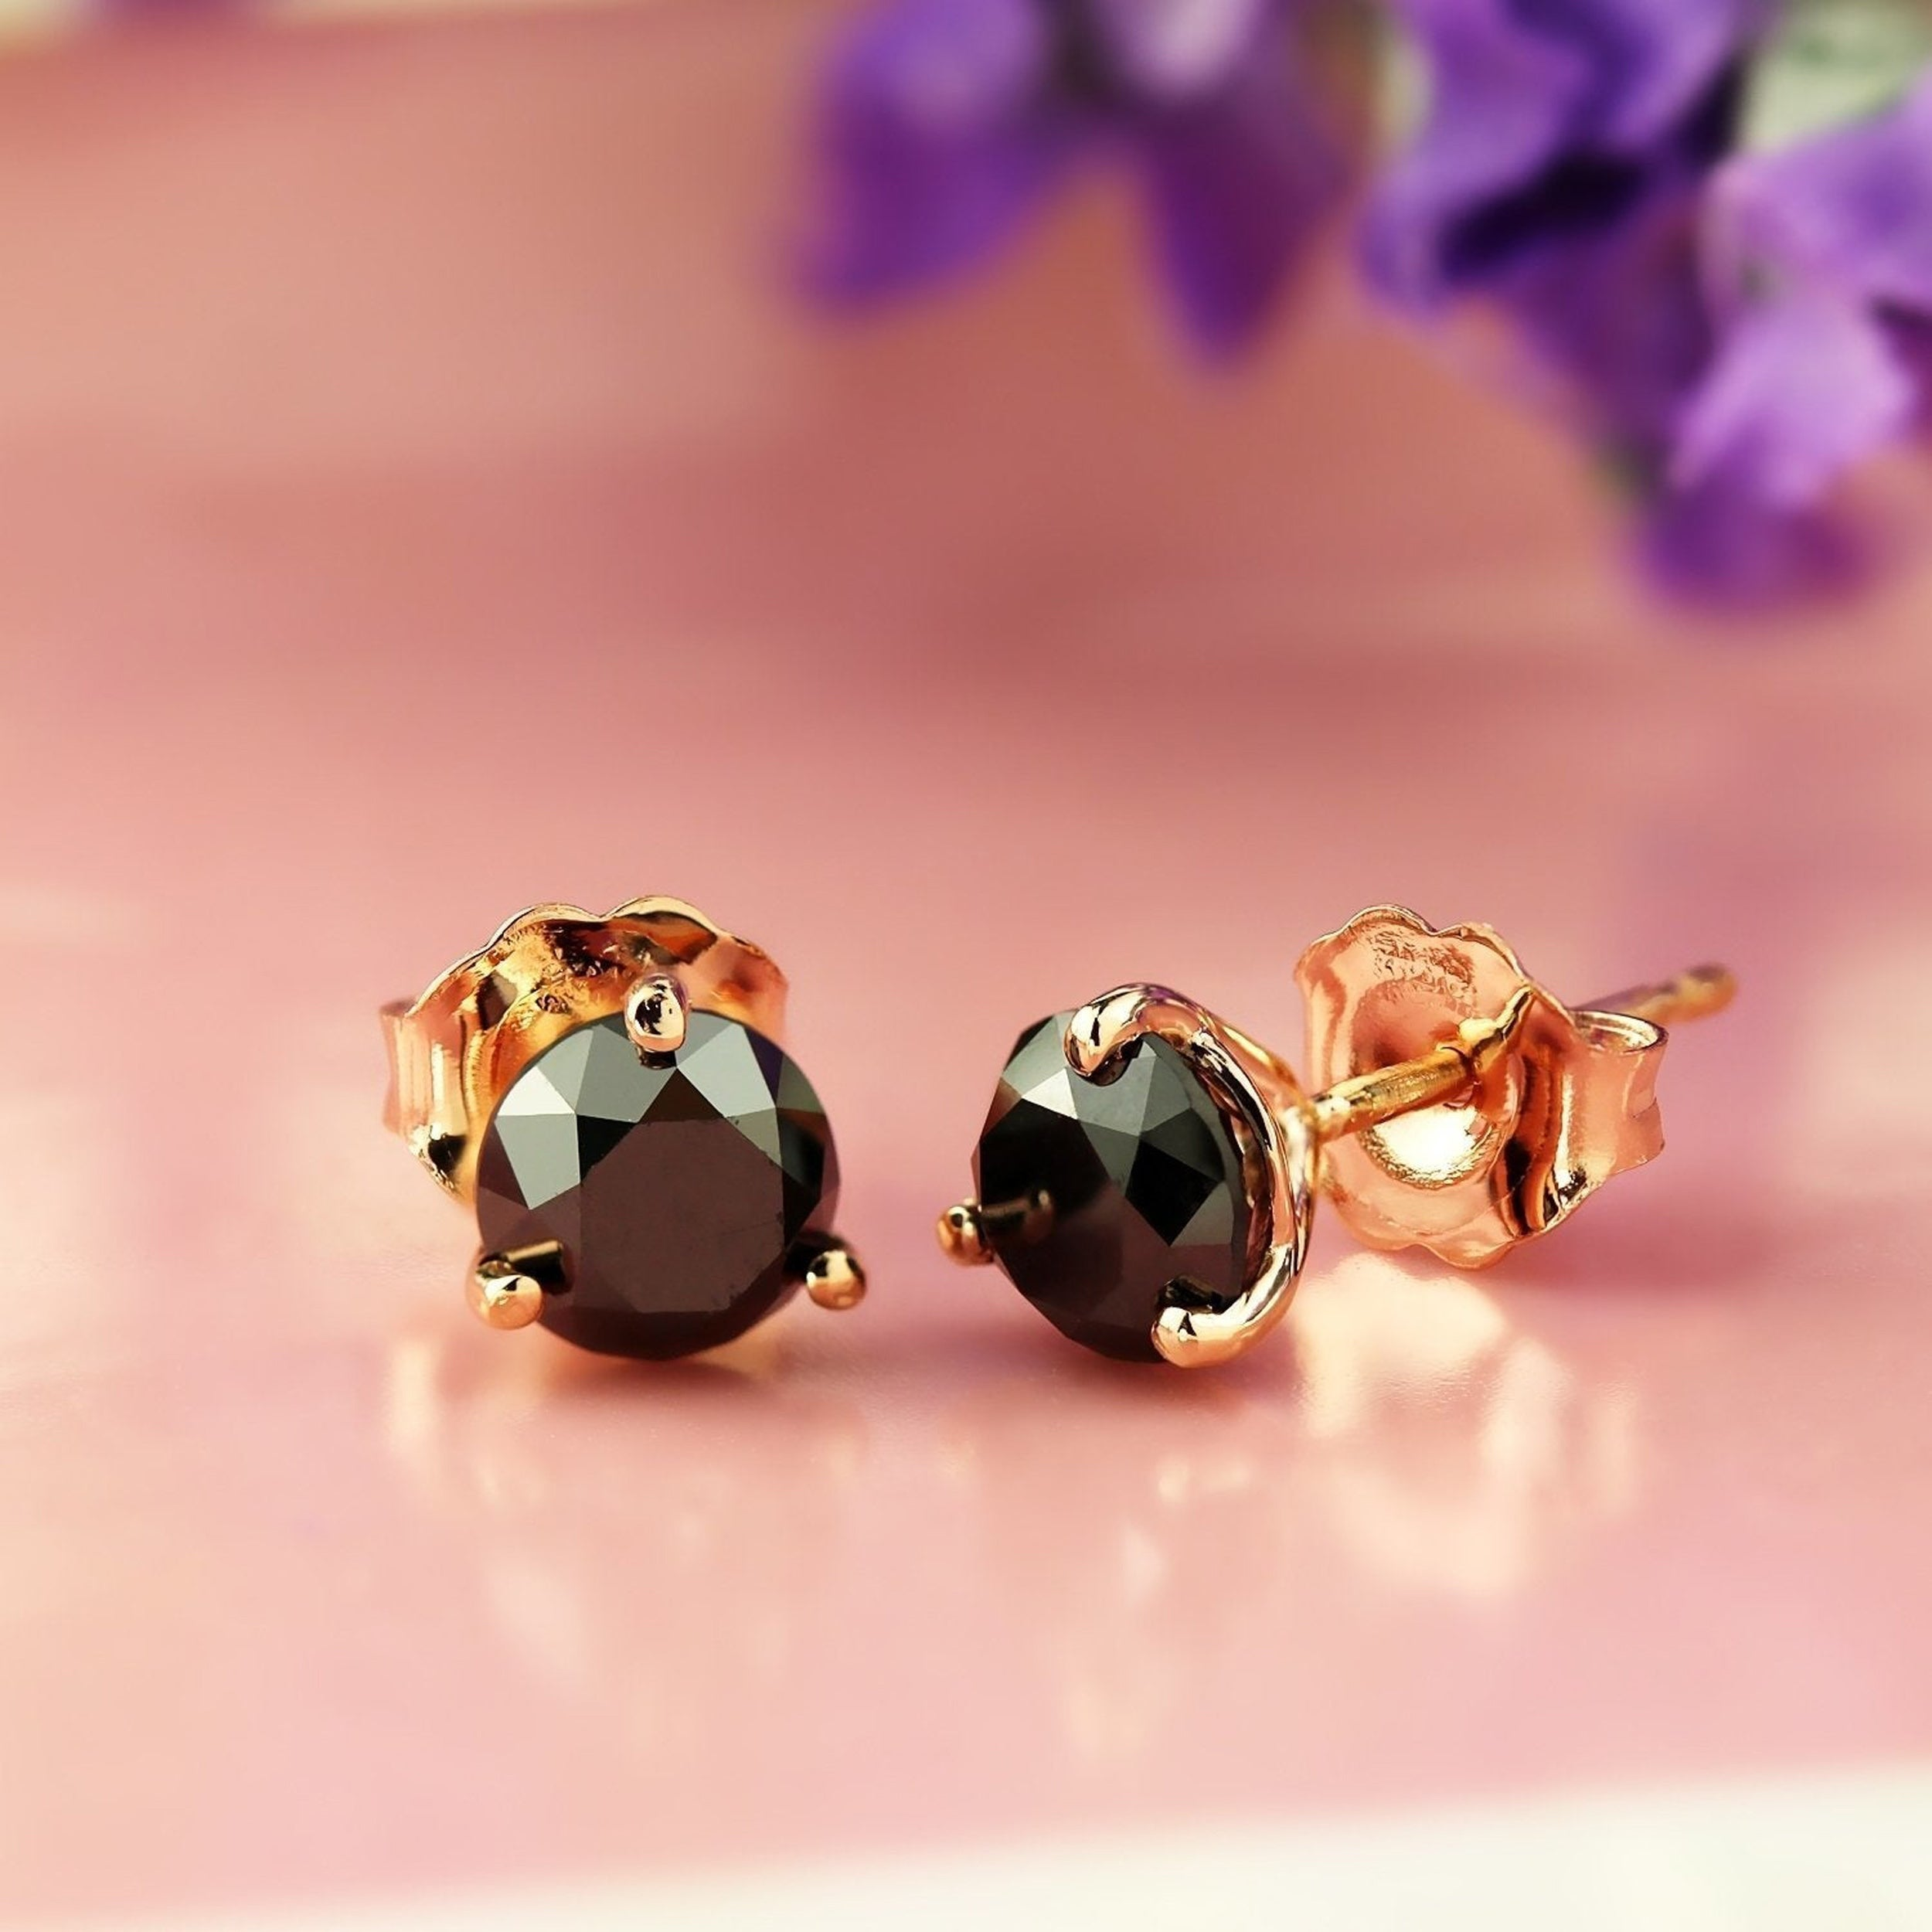 0.50 CTW Round Black Diamond Martini Stud Earrings In 14K Gold Everyday earring Gifts for women